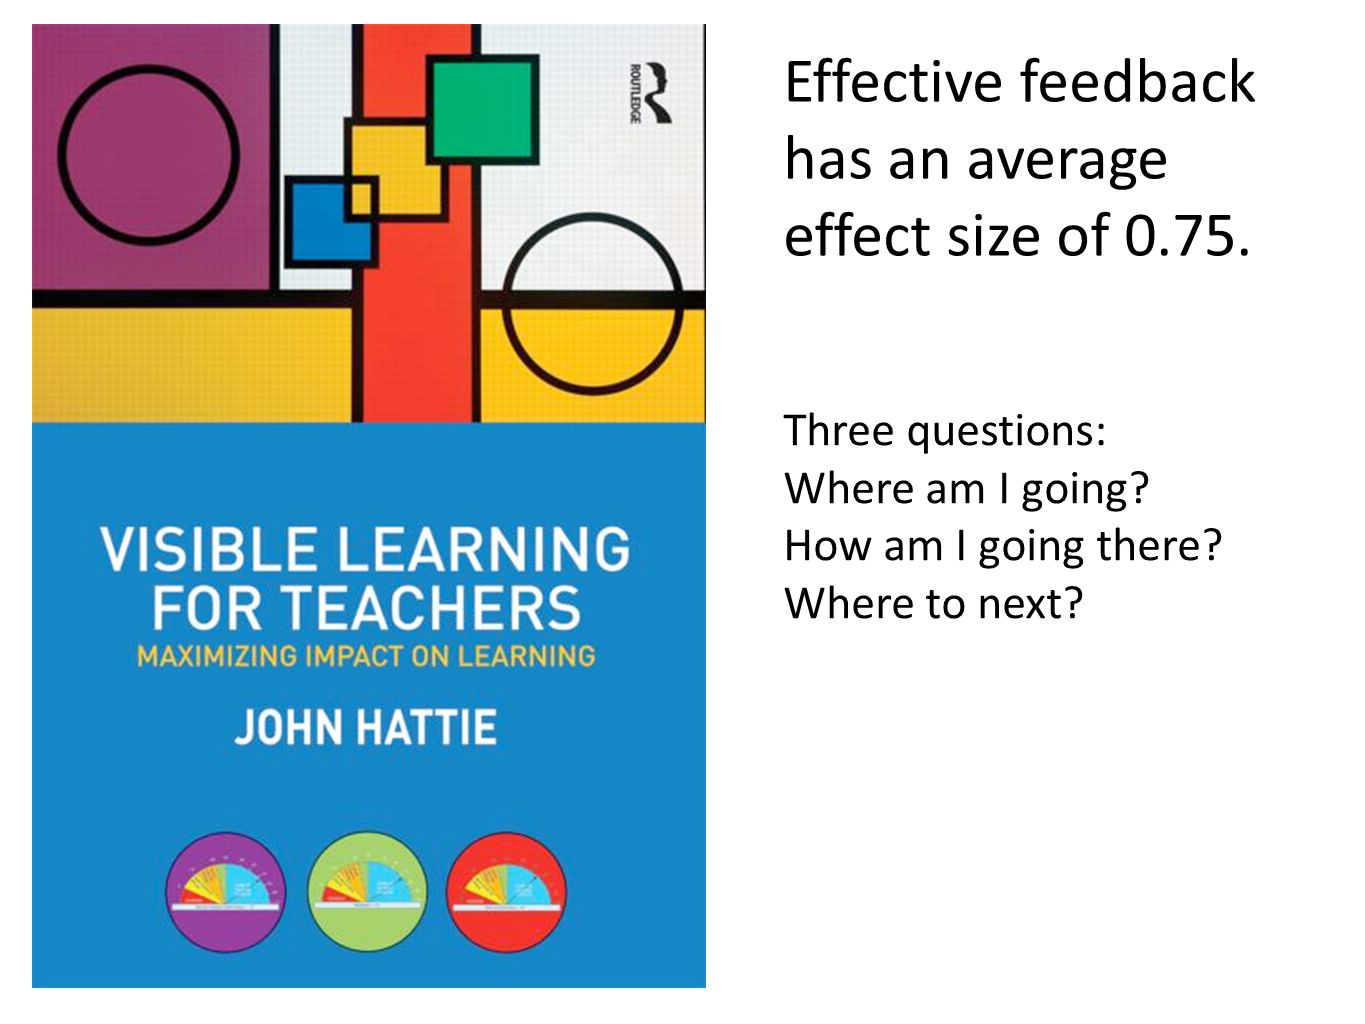 Effective feedback has an average effect size of 0.75.